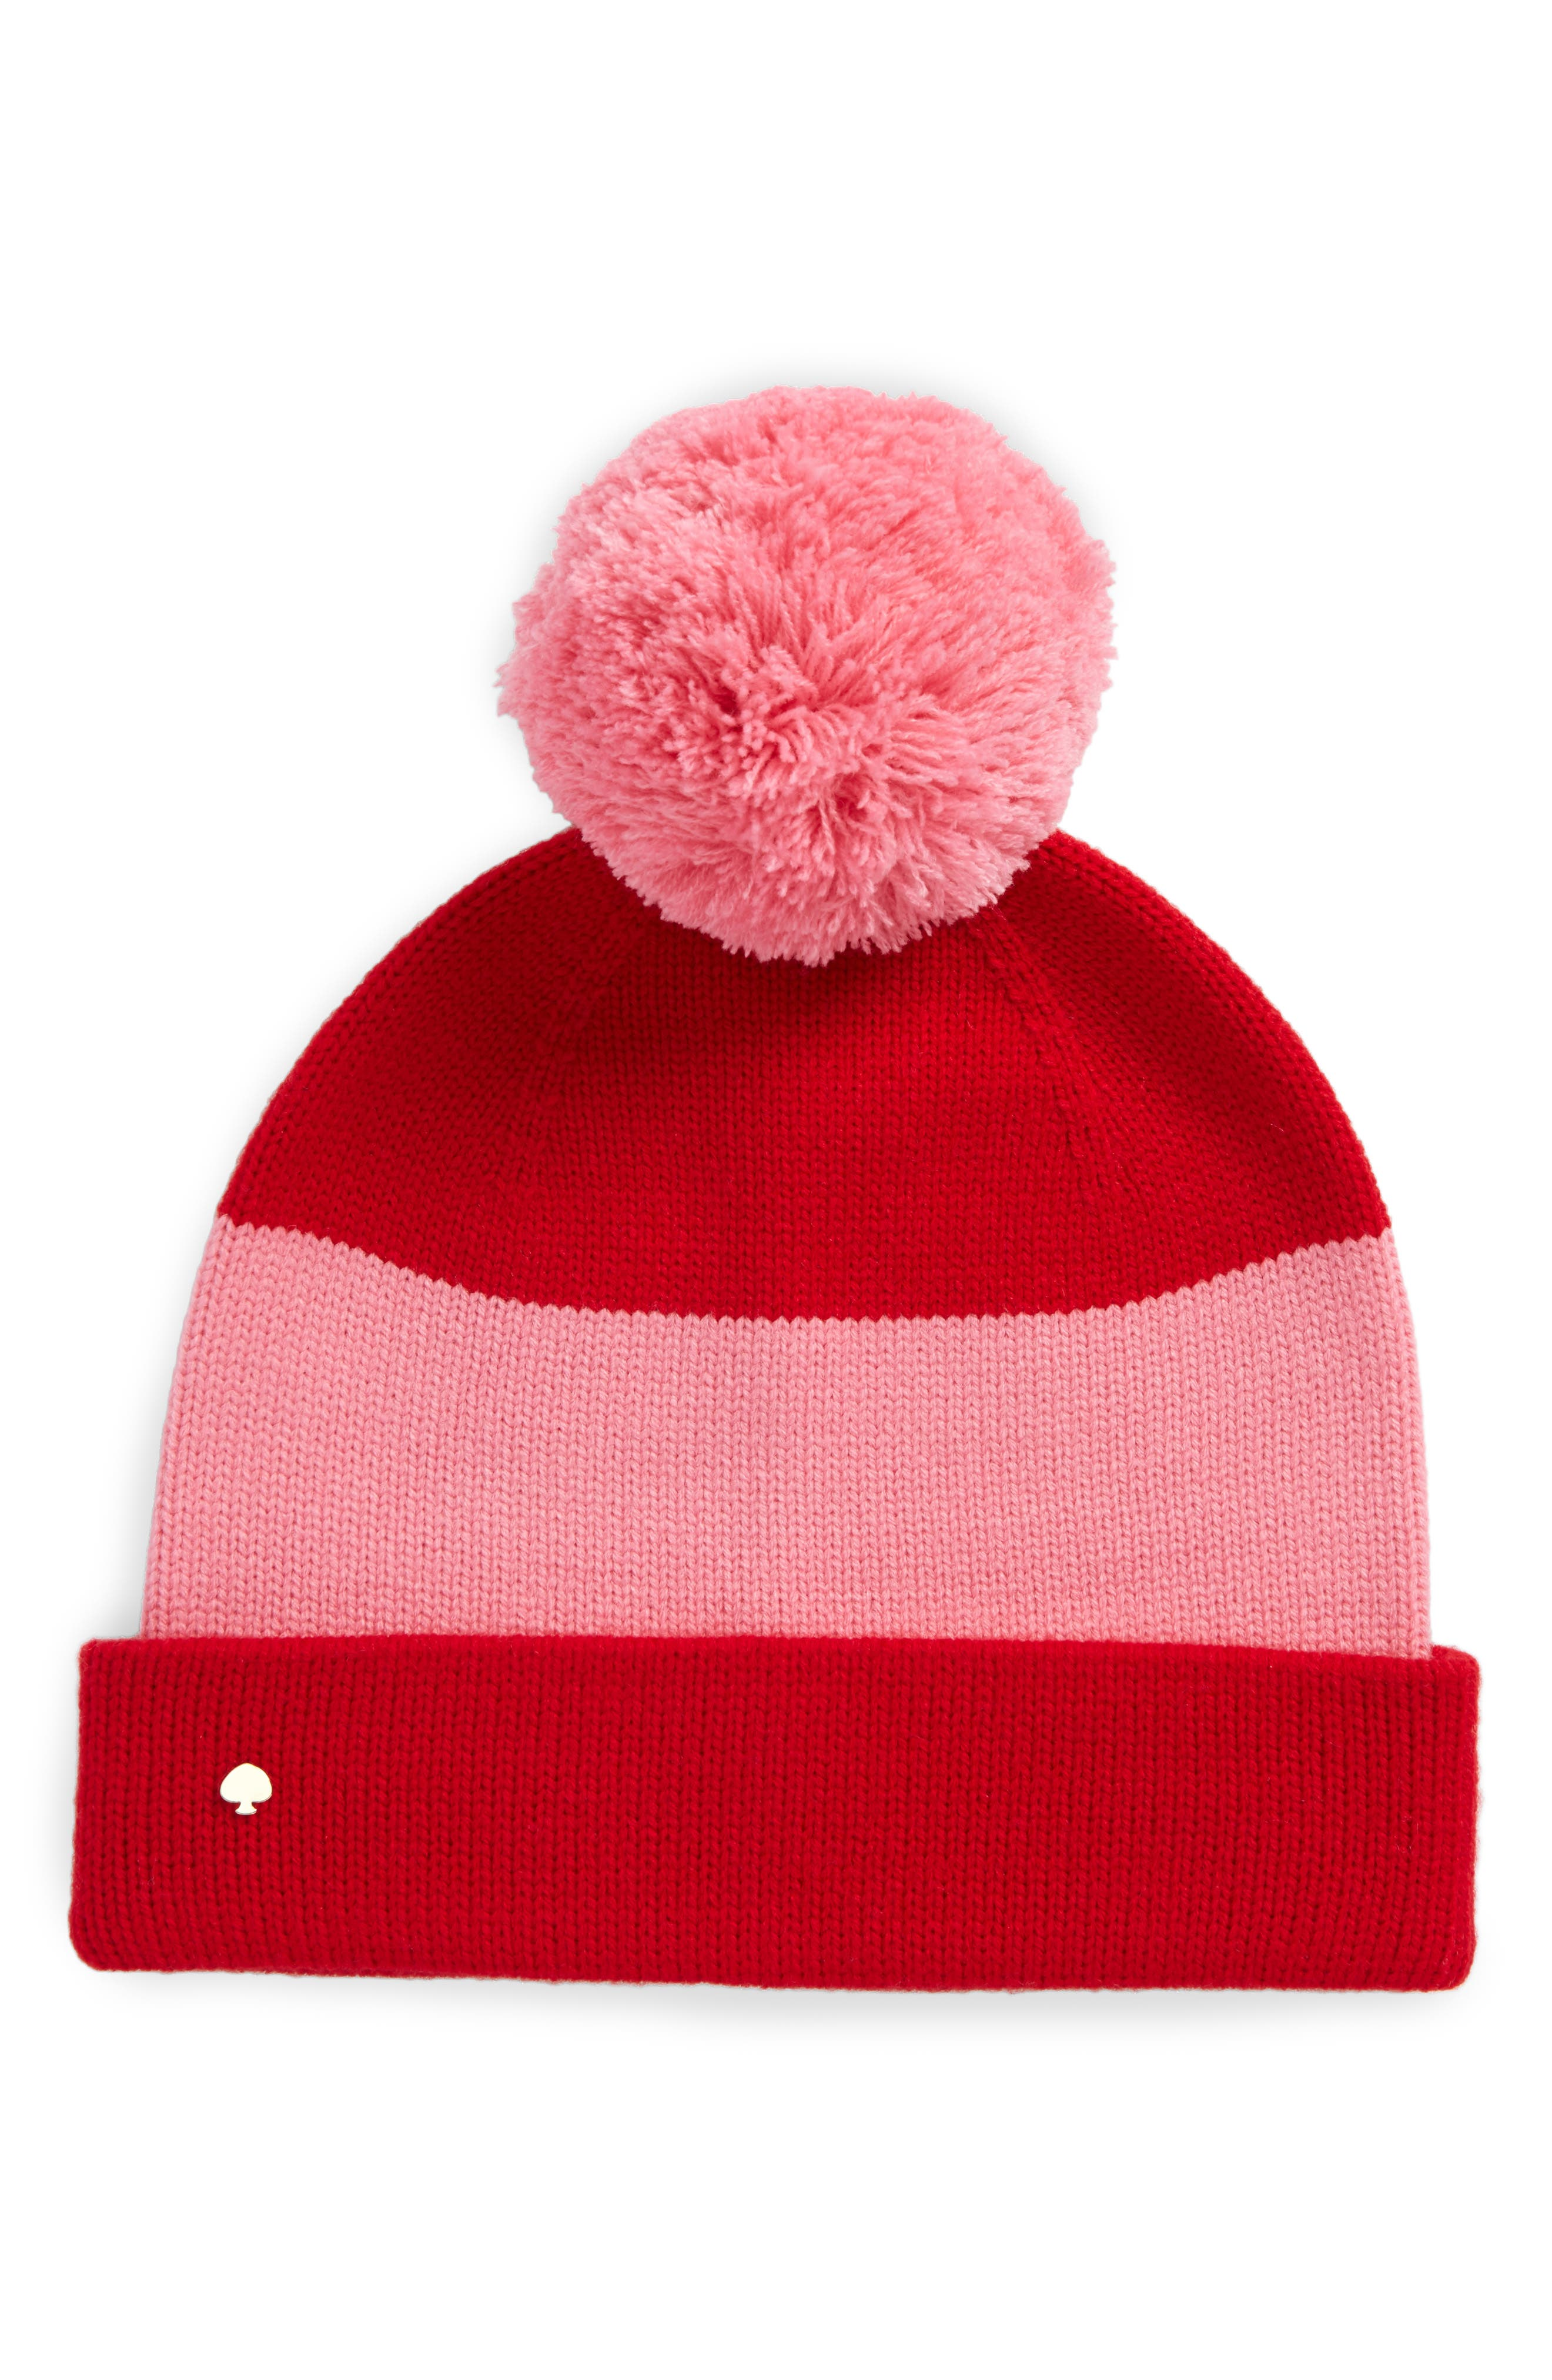 colorblock knit beanie,                         Main,                         color, FLEUR DE LIS/CHARM RED